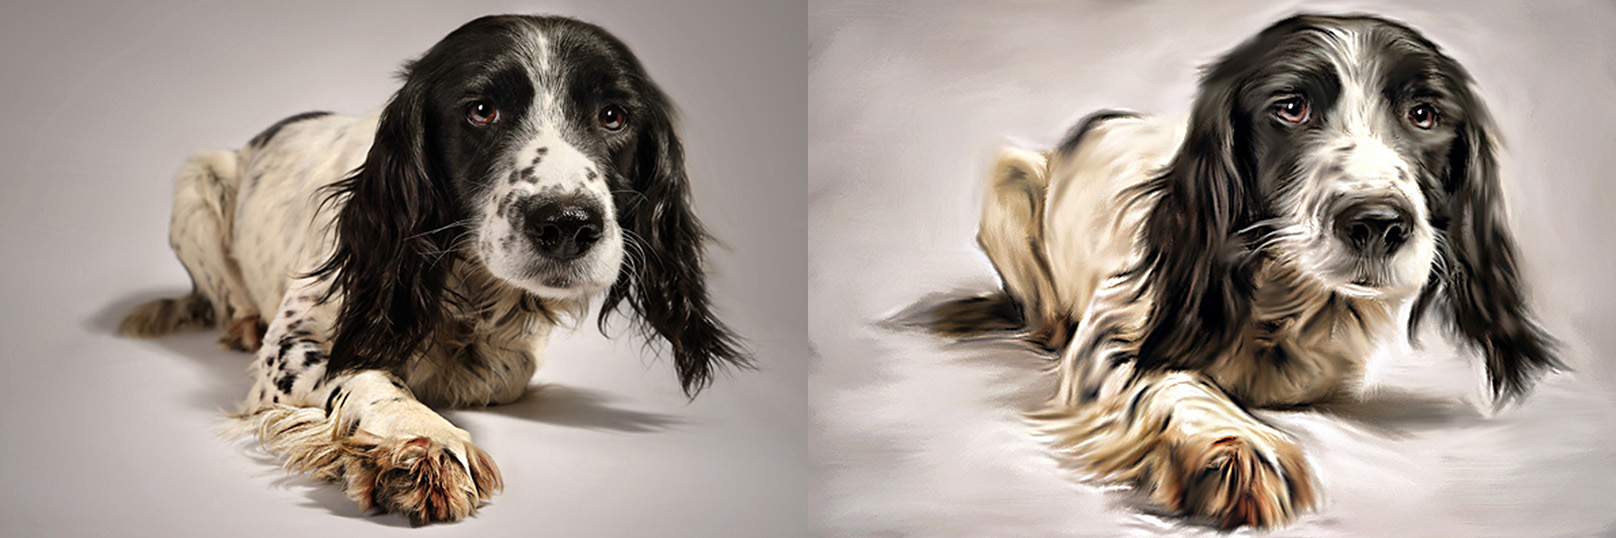 A digital painting can create a masterpiece out of a good photo.